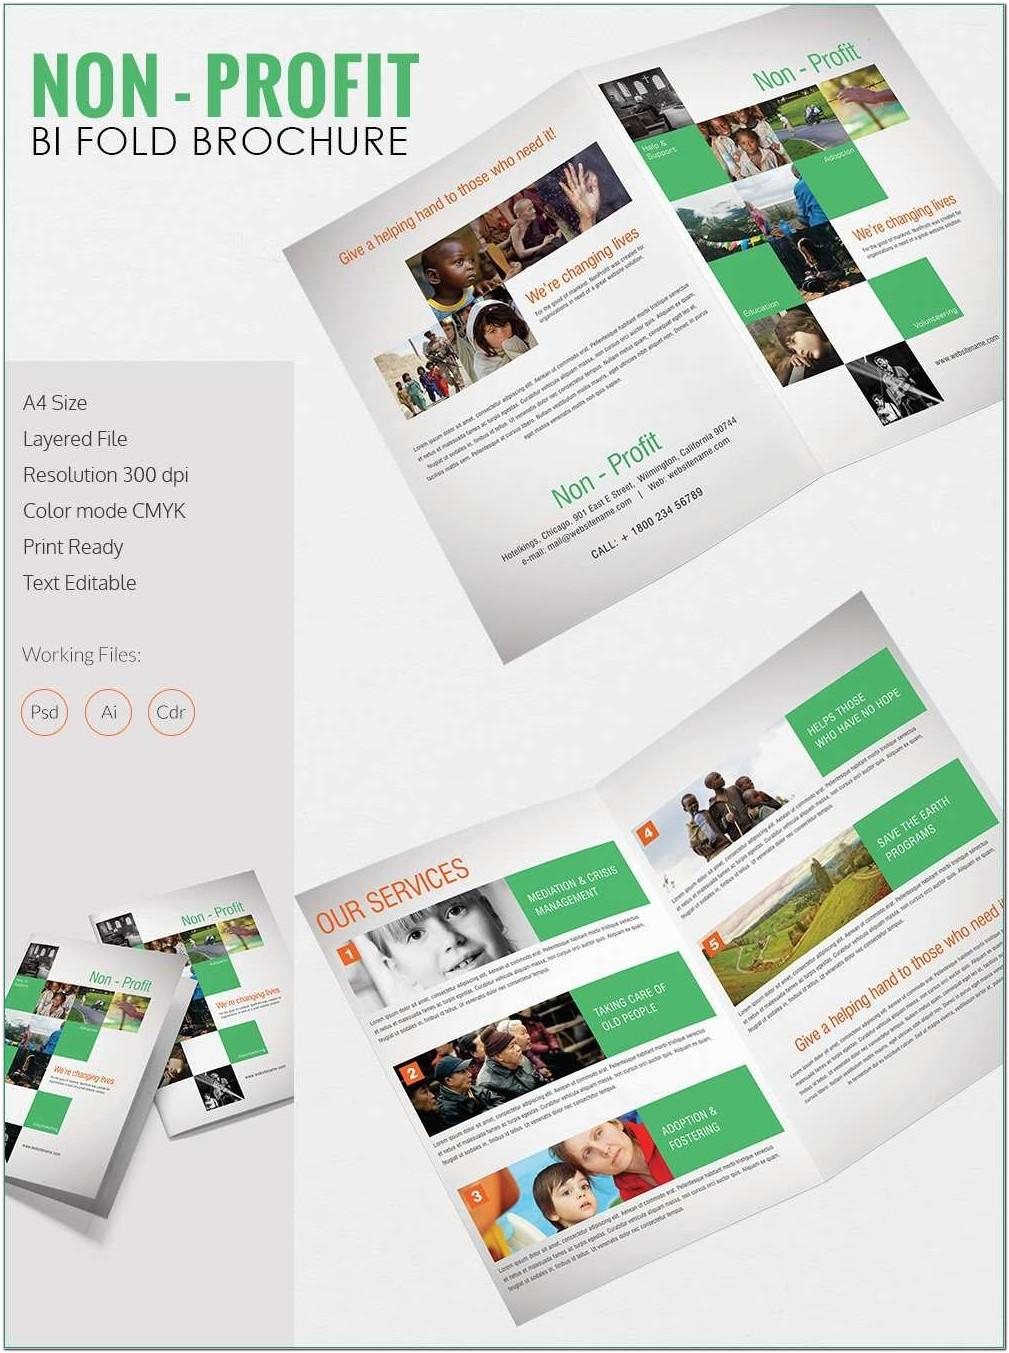 Bi Fold Brochure Template Publisher Free - Templates With 4 Fold Brochure Template Word